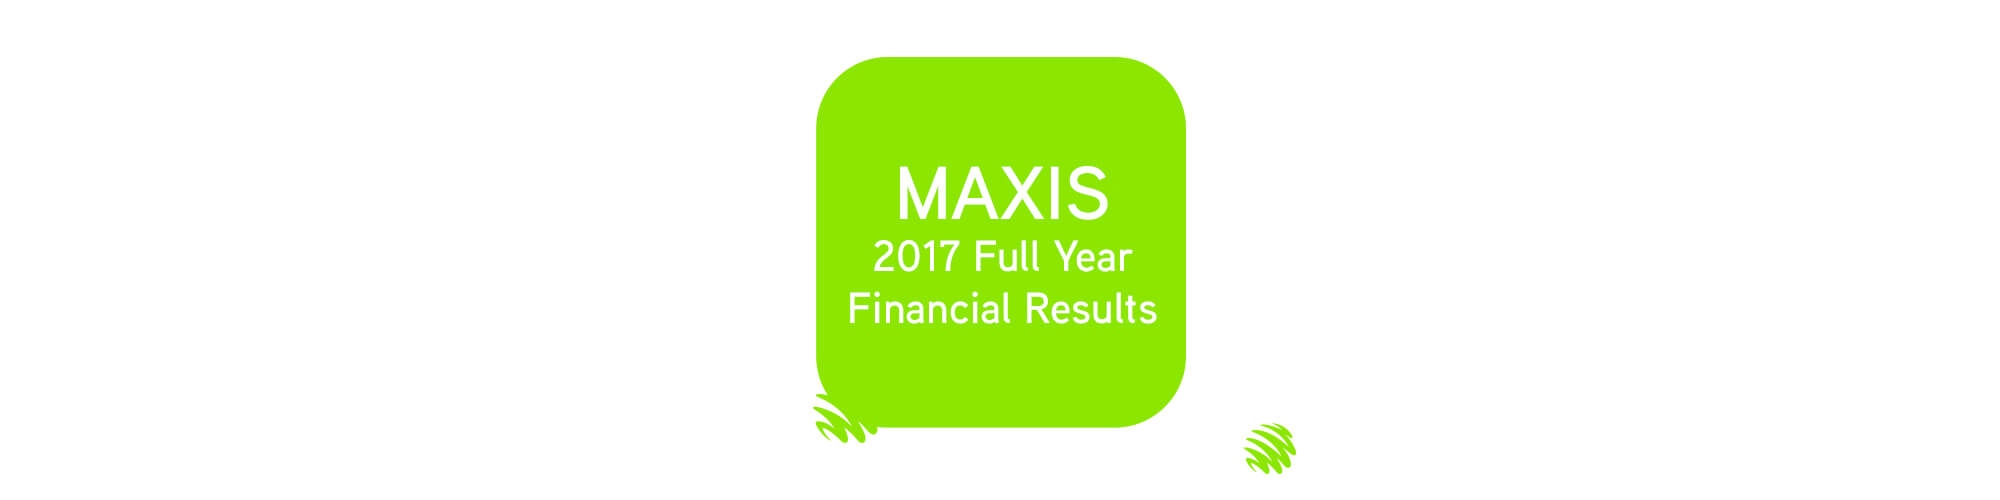 Maxis 2017 Full Year Financial Results